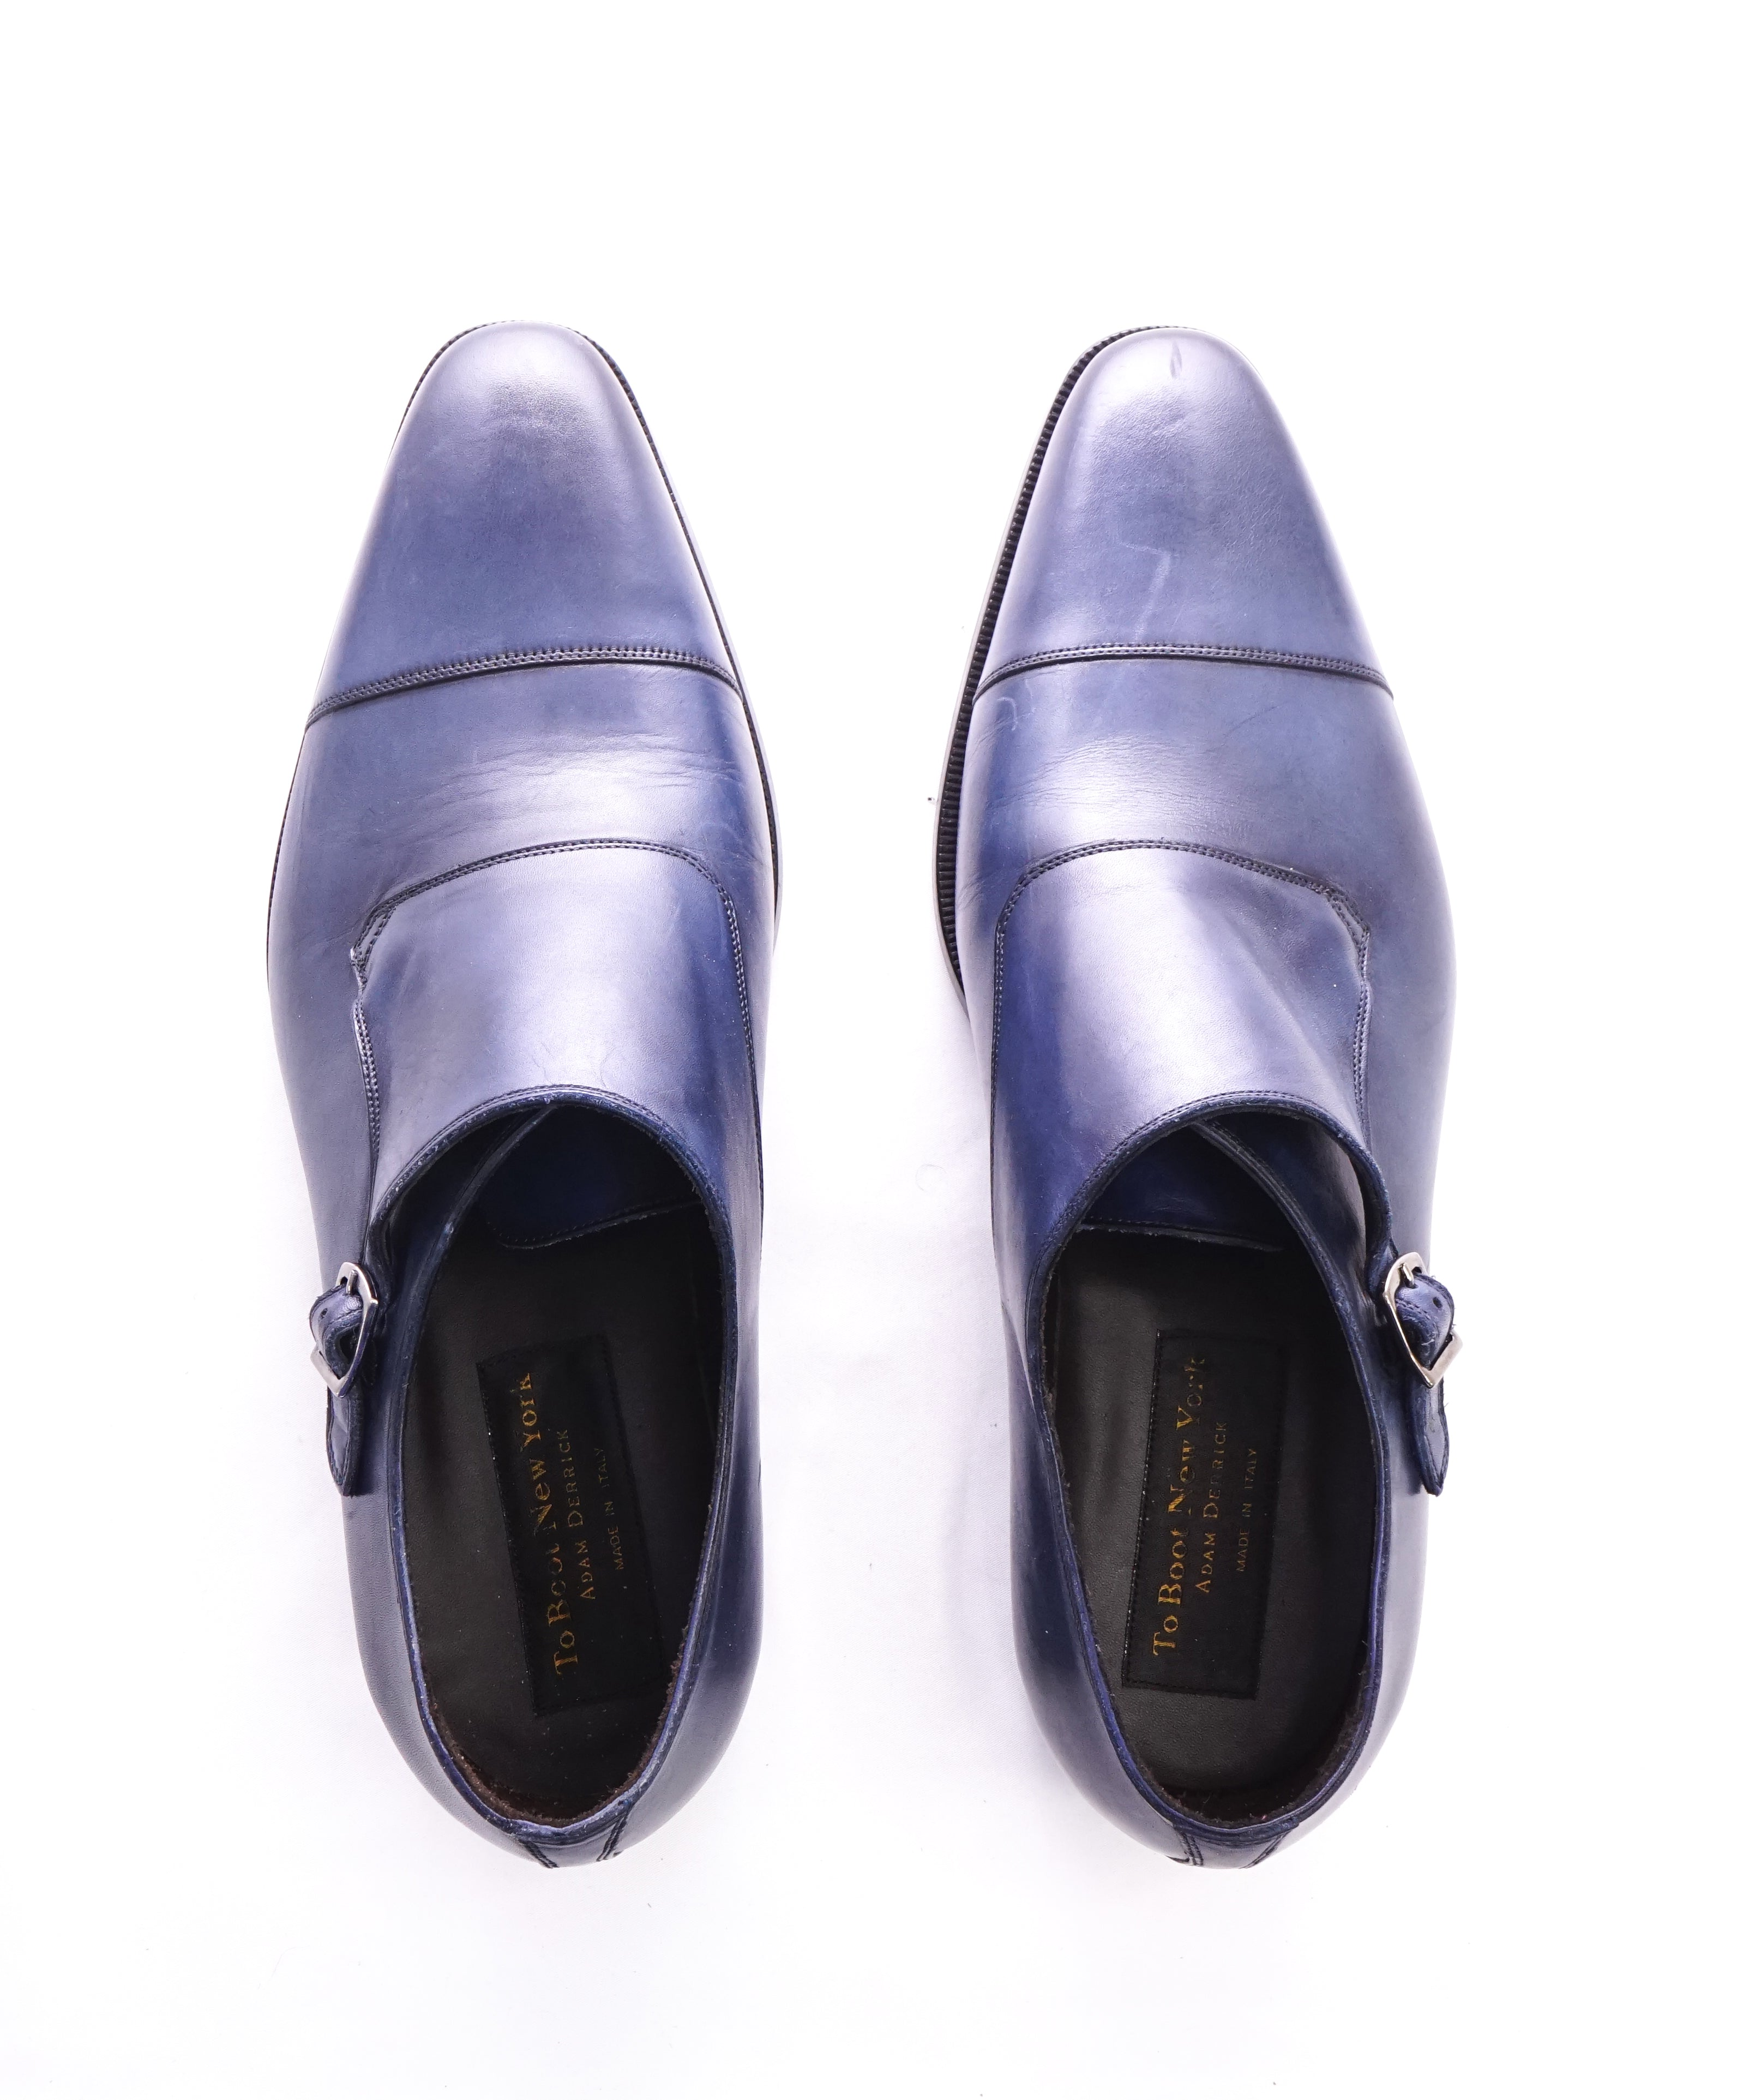 TO BOOT NEW YORK - Fly Away Single Monk Strap Blue Loafers - 11.5